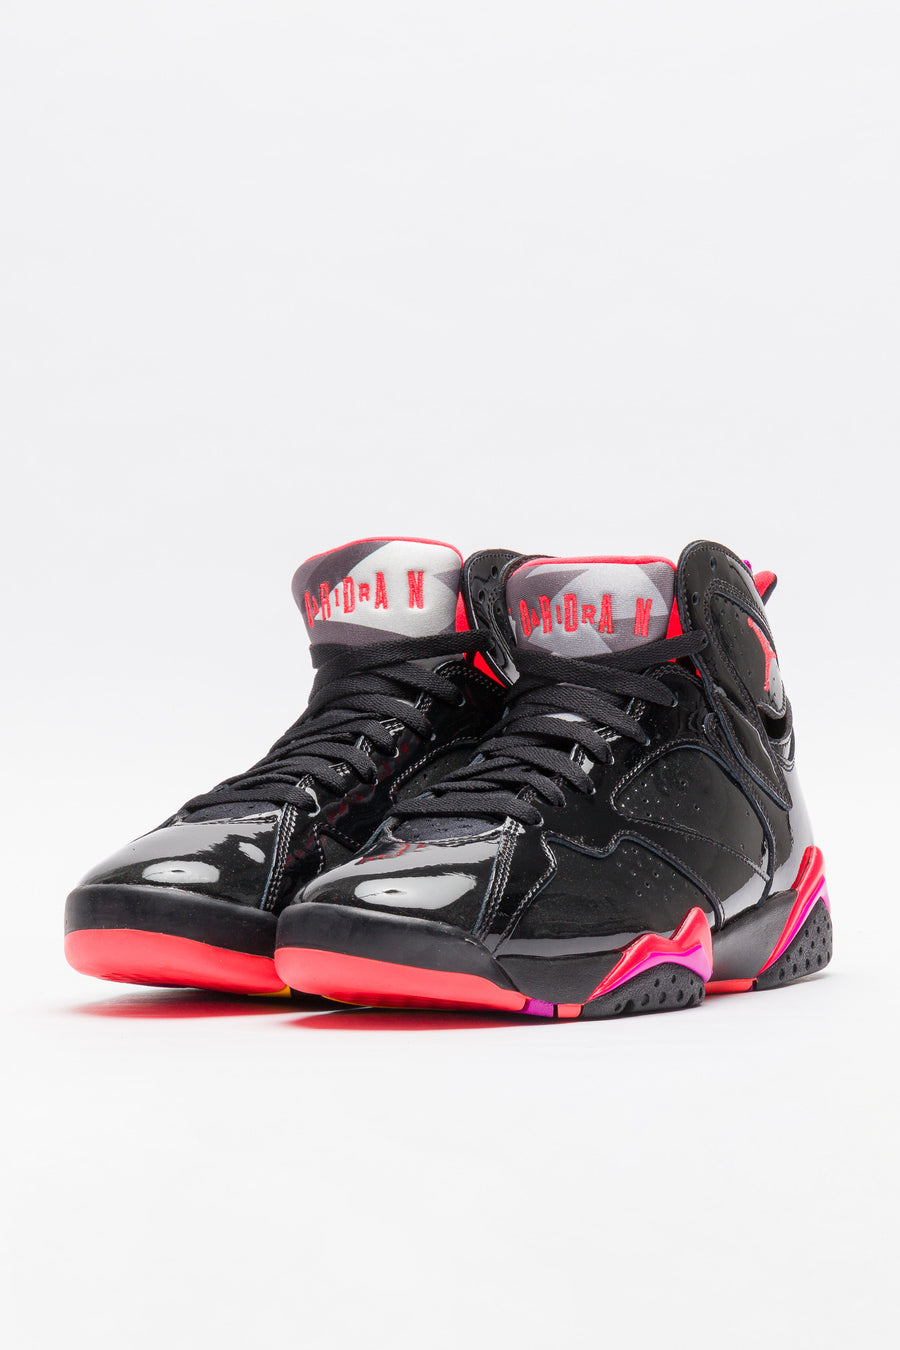 Jordan Air Jordan 7 Retro in Black/Crimson - Notre